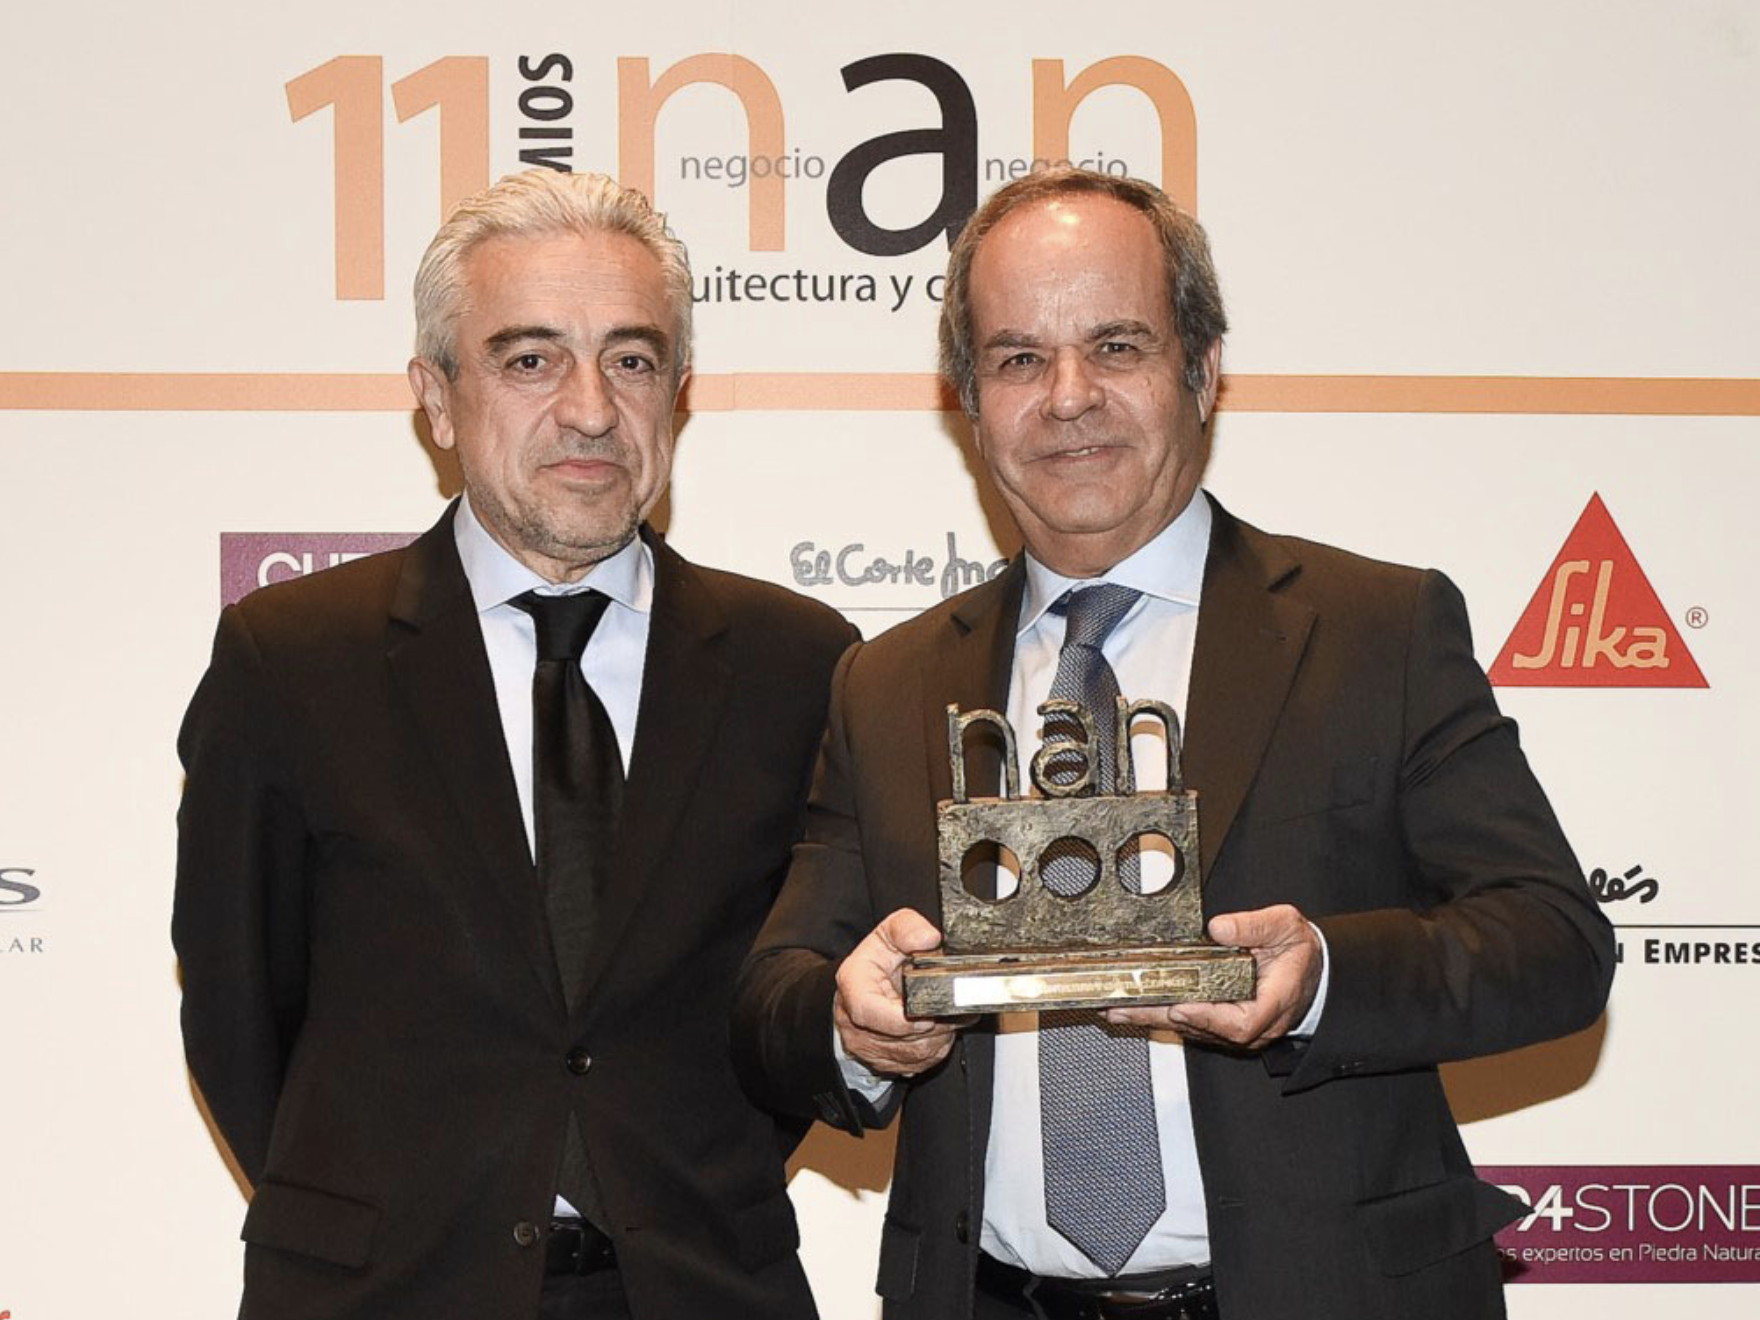 Image of 2 men holding an award